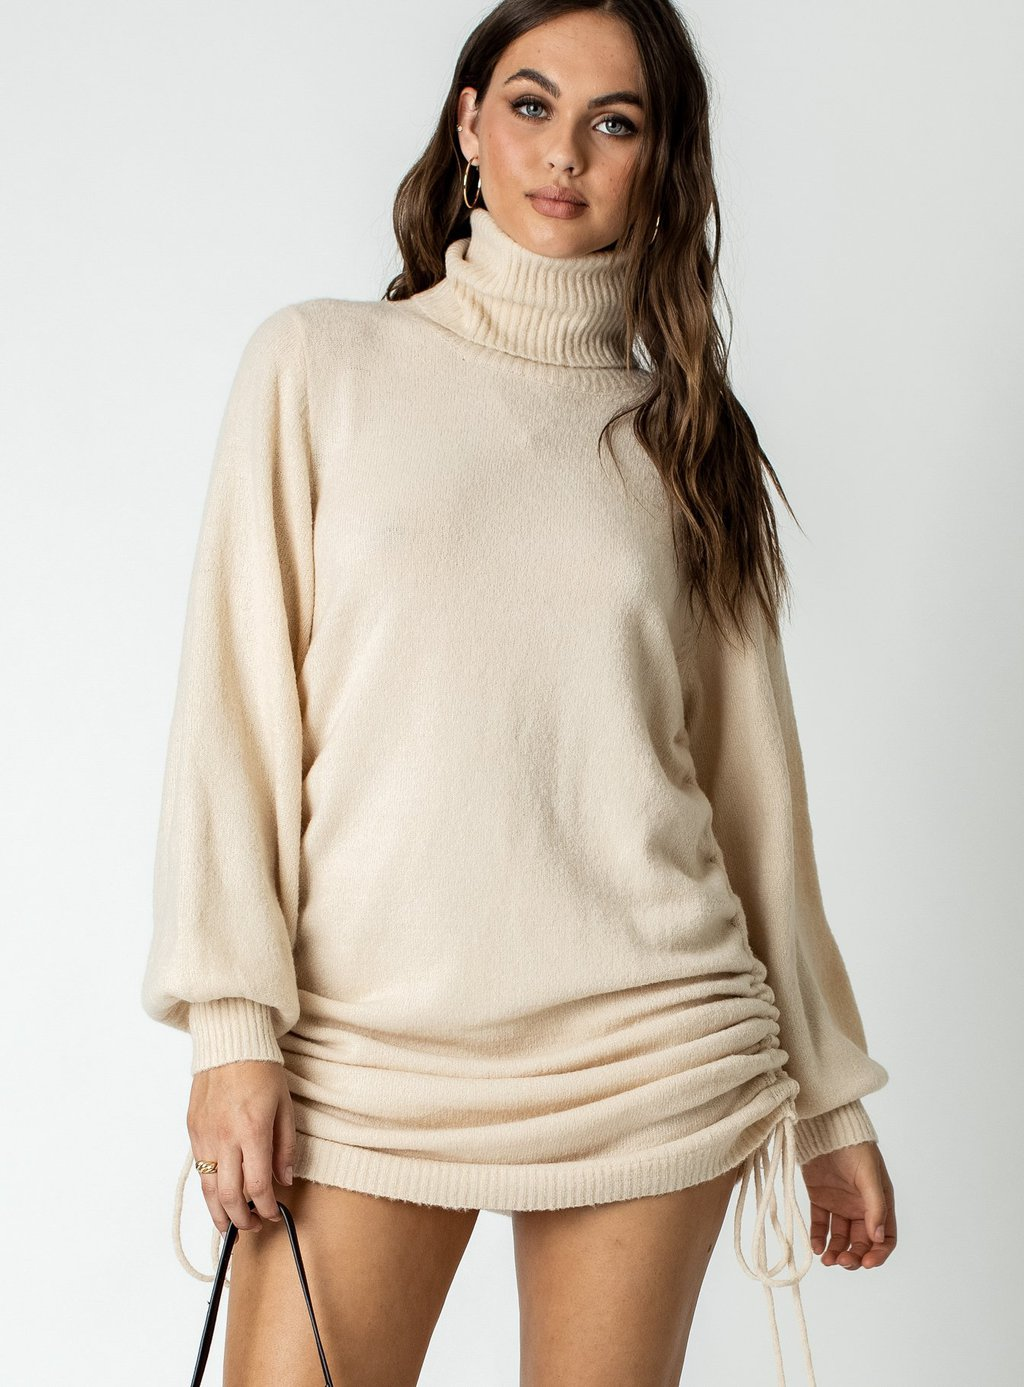 Manhattan mini sweater dress from Princess Polly